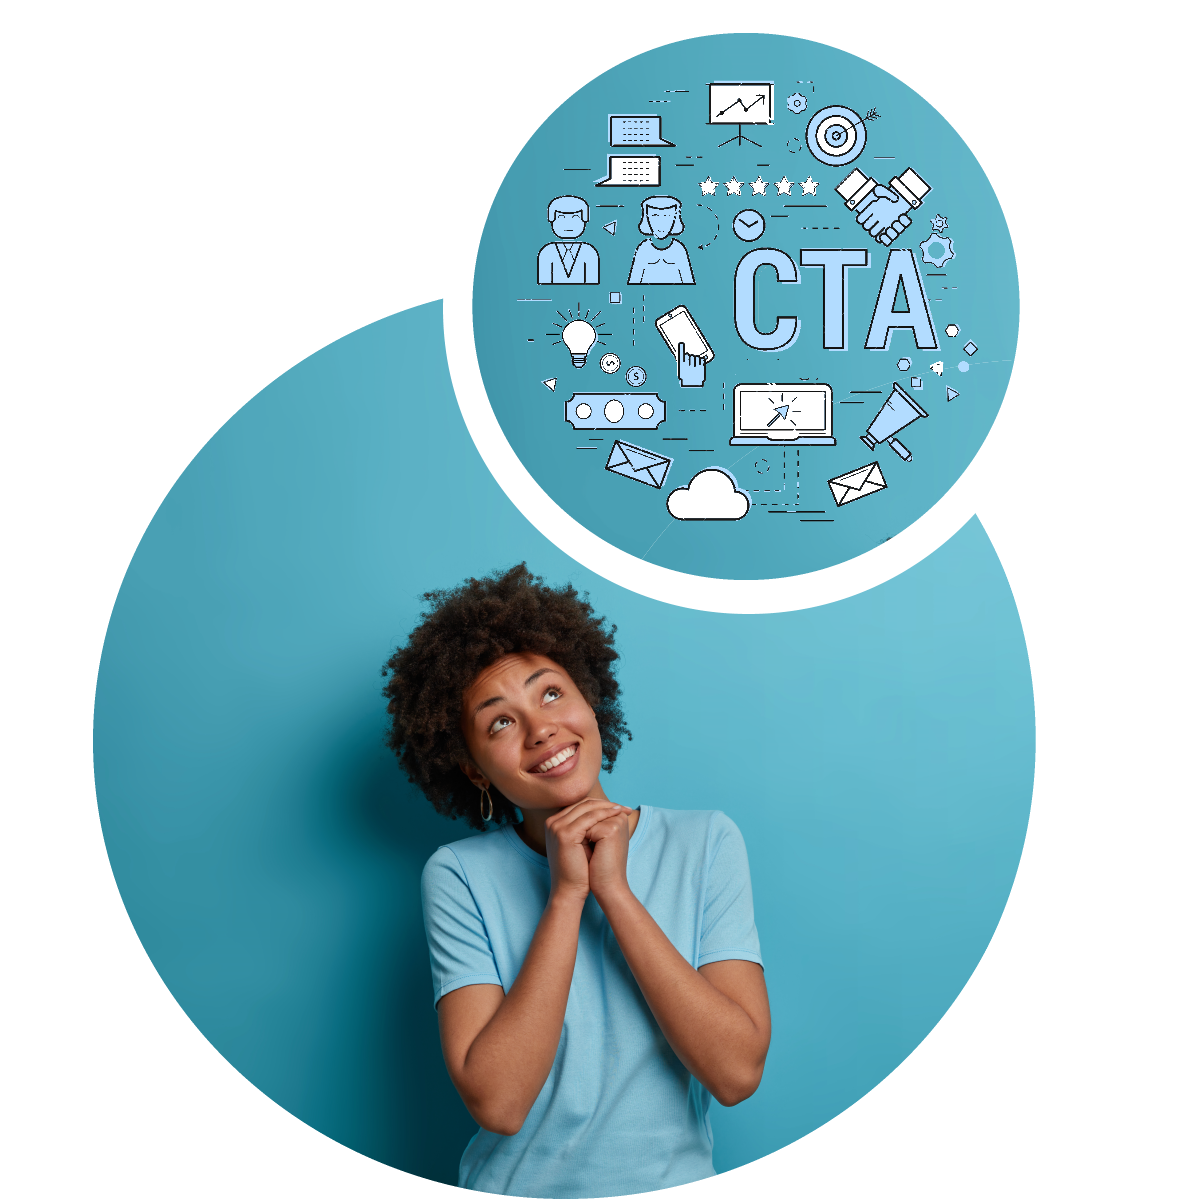 cta for easylive video message